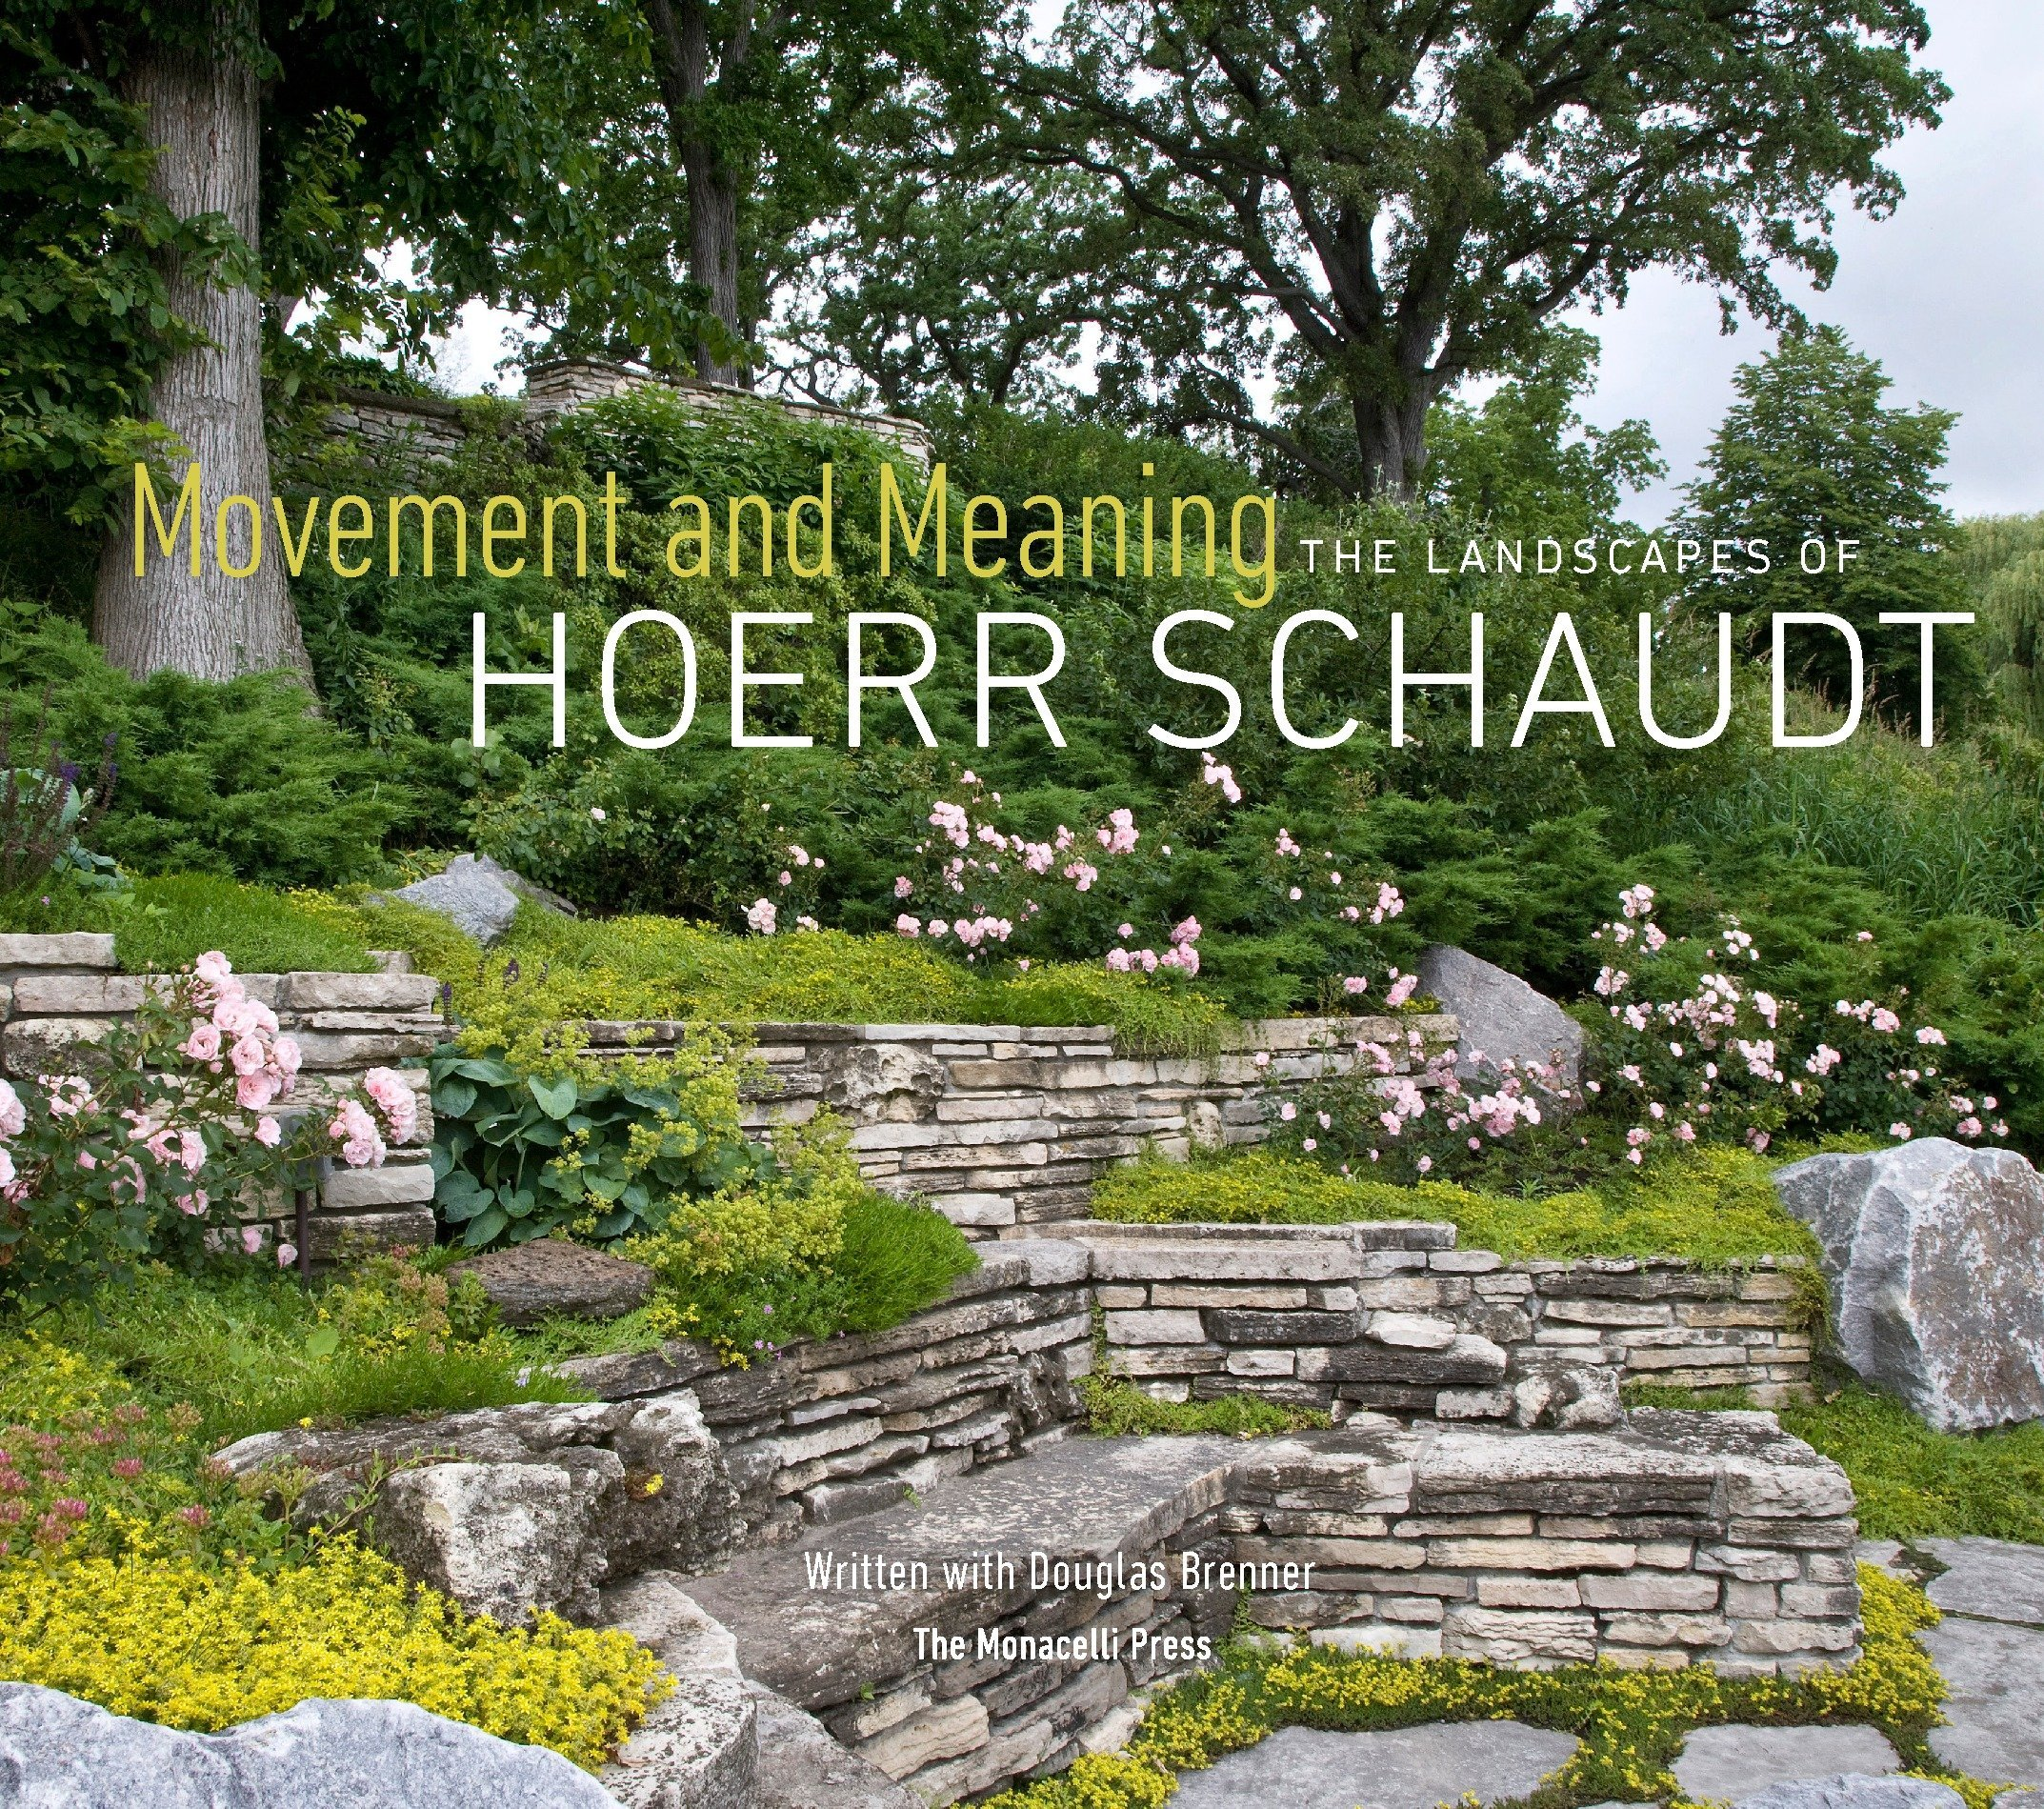 The Landscapes of Hoerr Schaudt Movement and Meaning